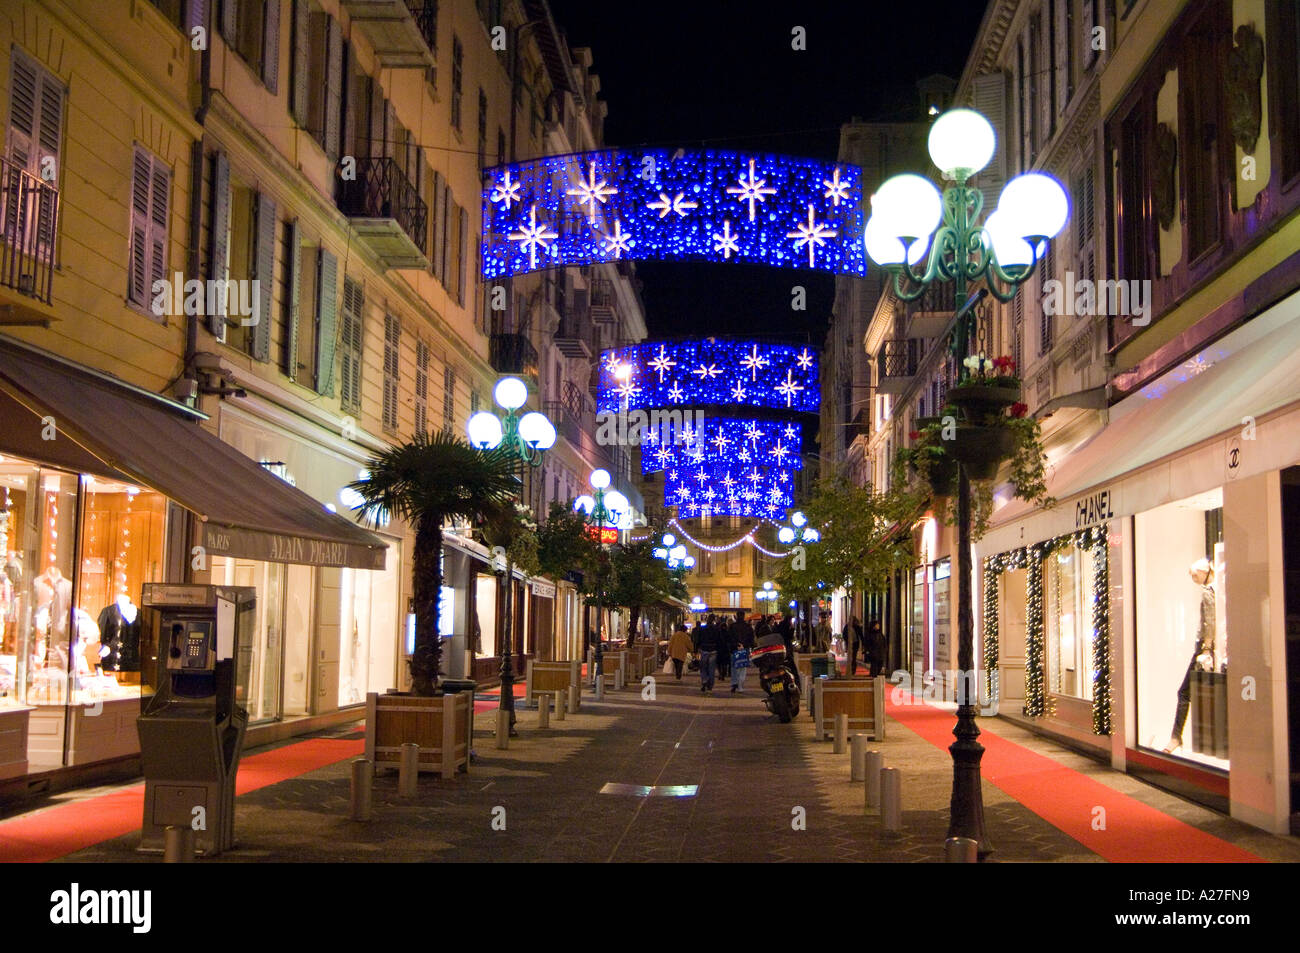 Strollers enjoying the Christmas streetlight decorations on the fashionable rue de Paradis in Nice on the French Riviera - Stock Image